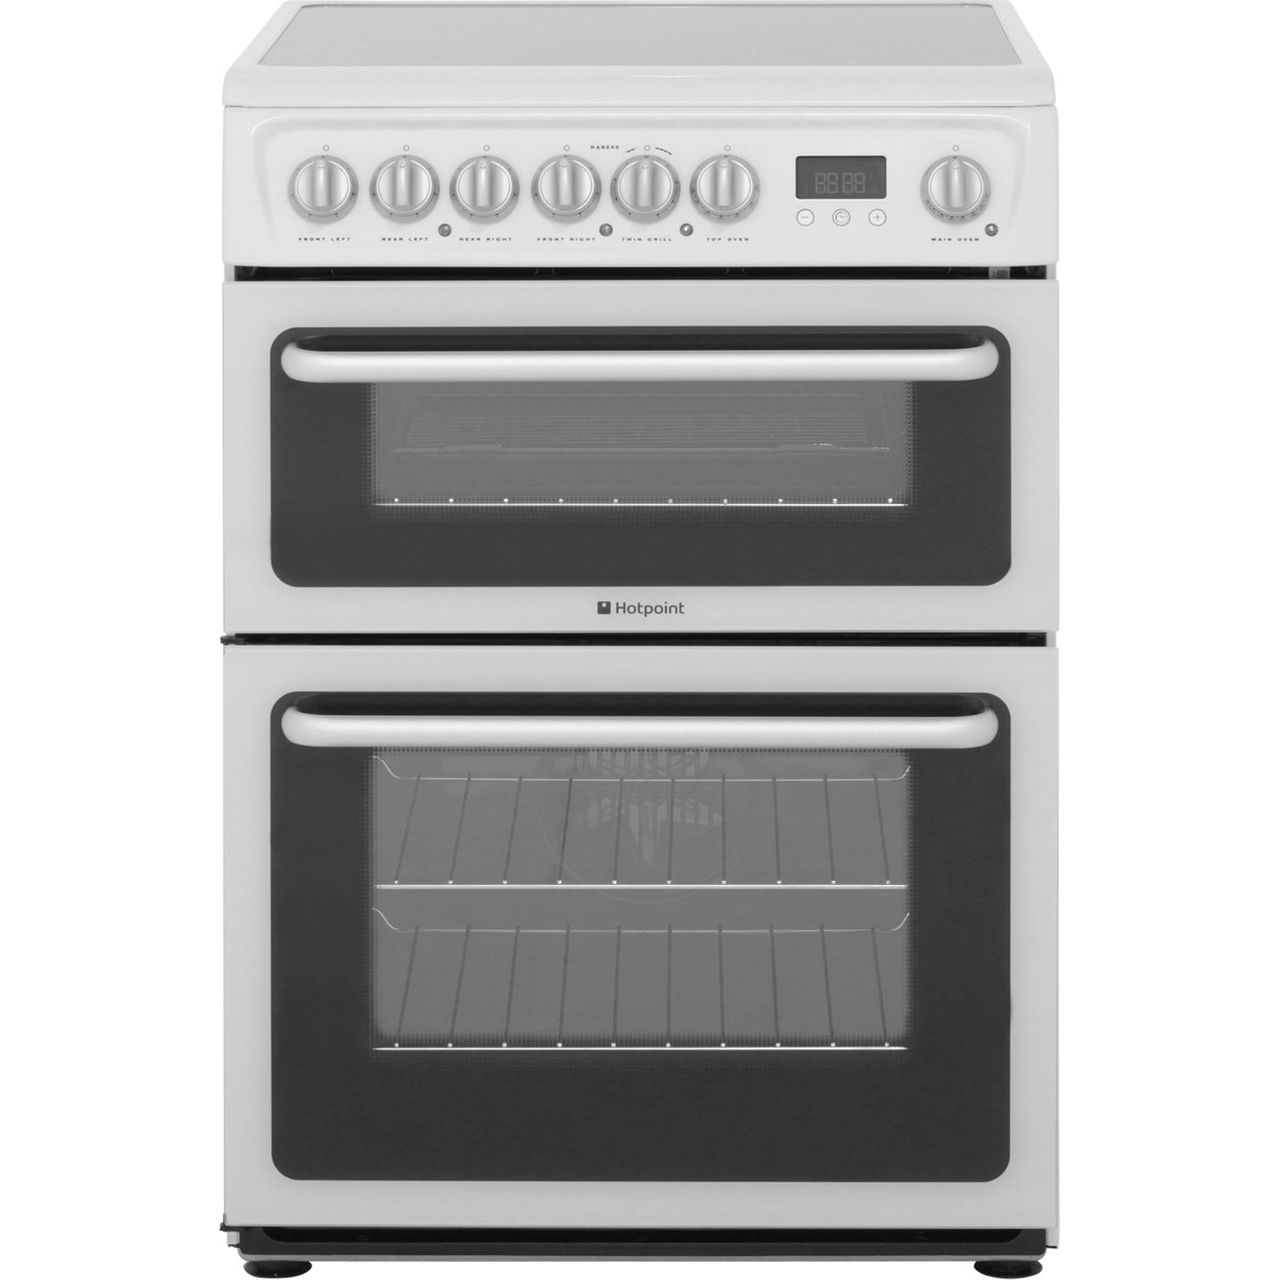 Hotpoint Hare60p Electric Cooker Review